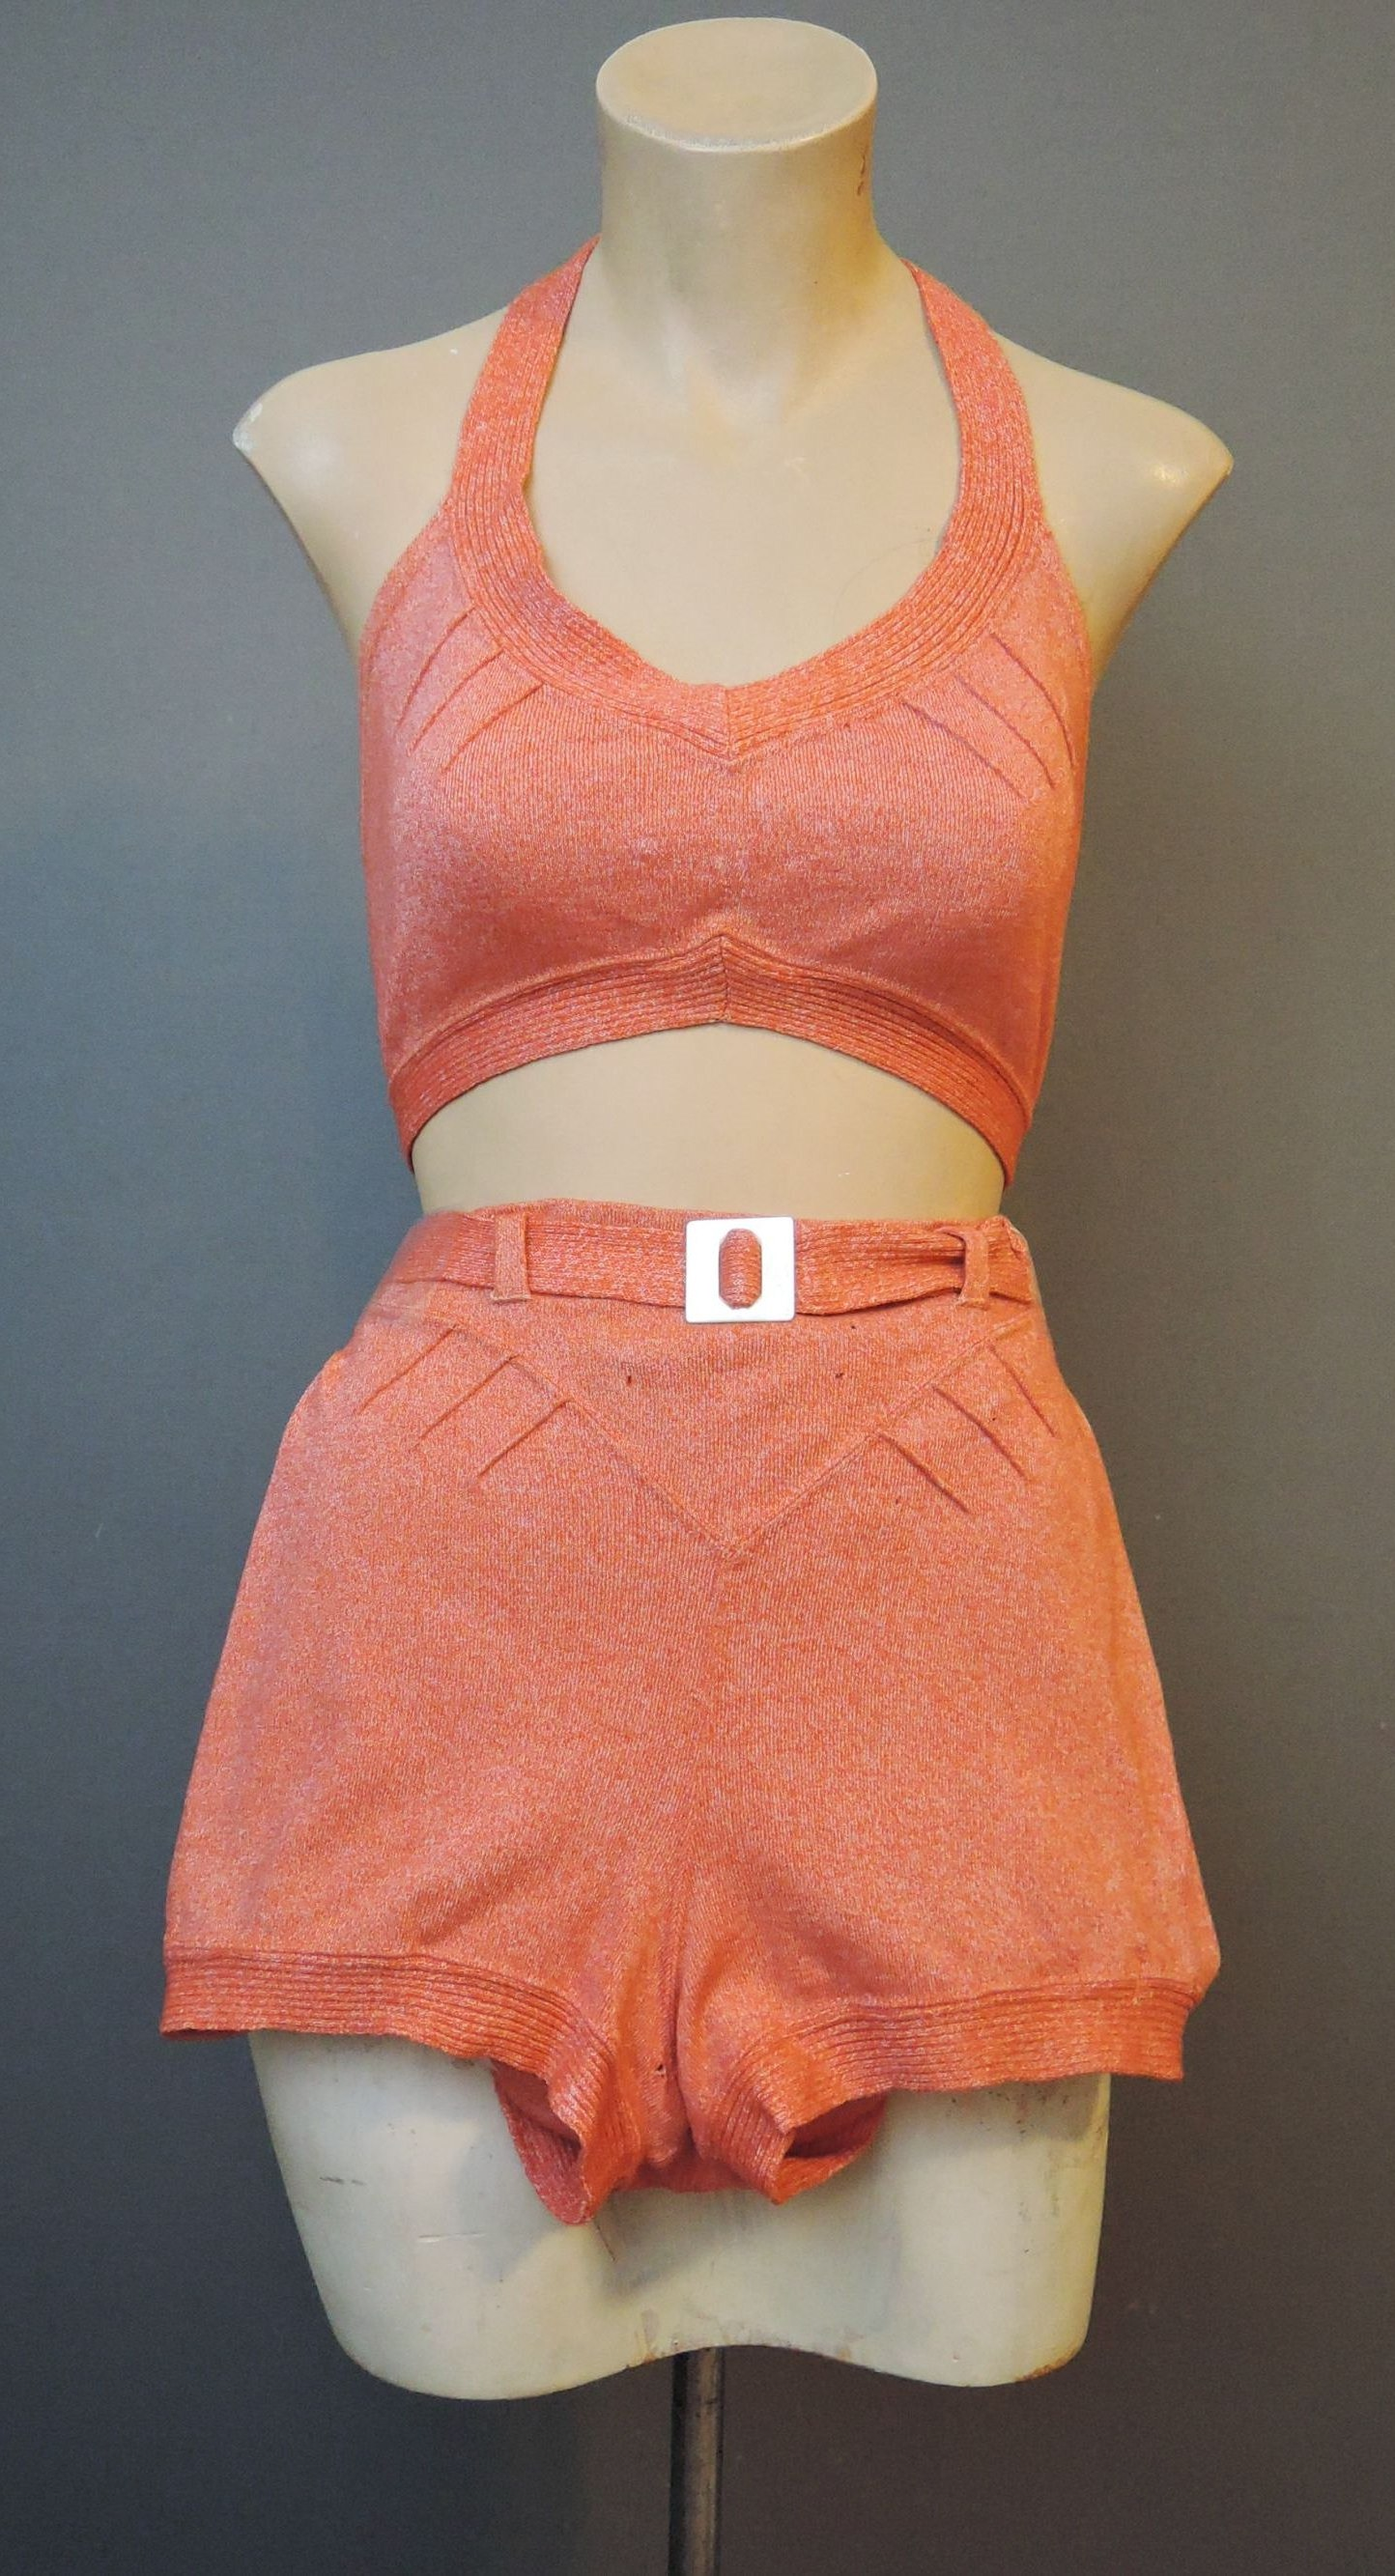 Vintage 1930s 2 Piece Swimsuit, Wool Knit Bradley, Red Orange with Buckle, as is Bathing suit